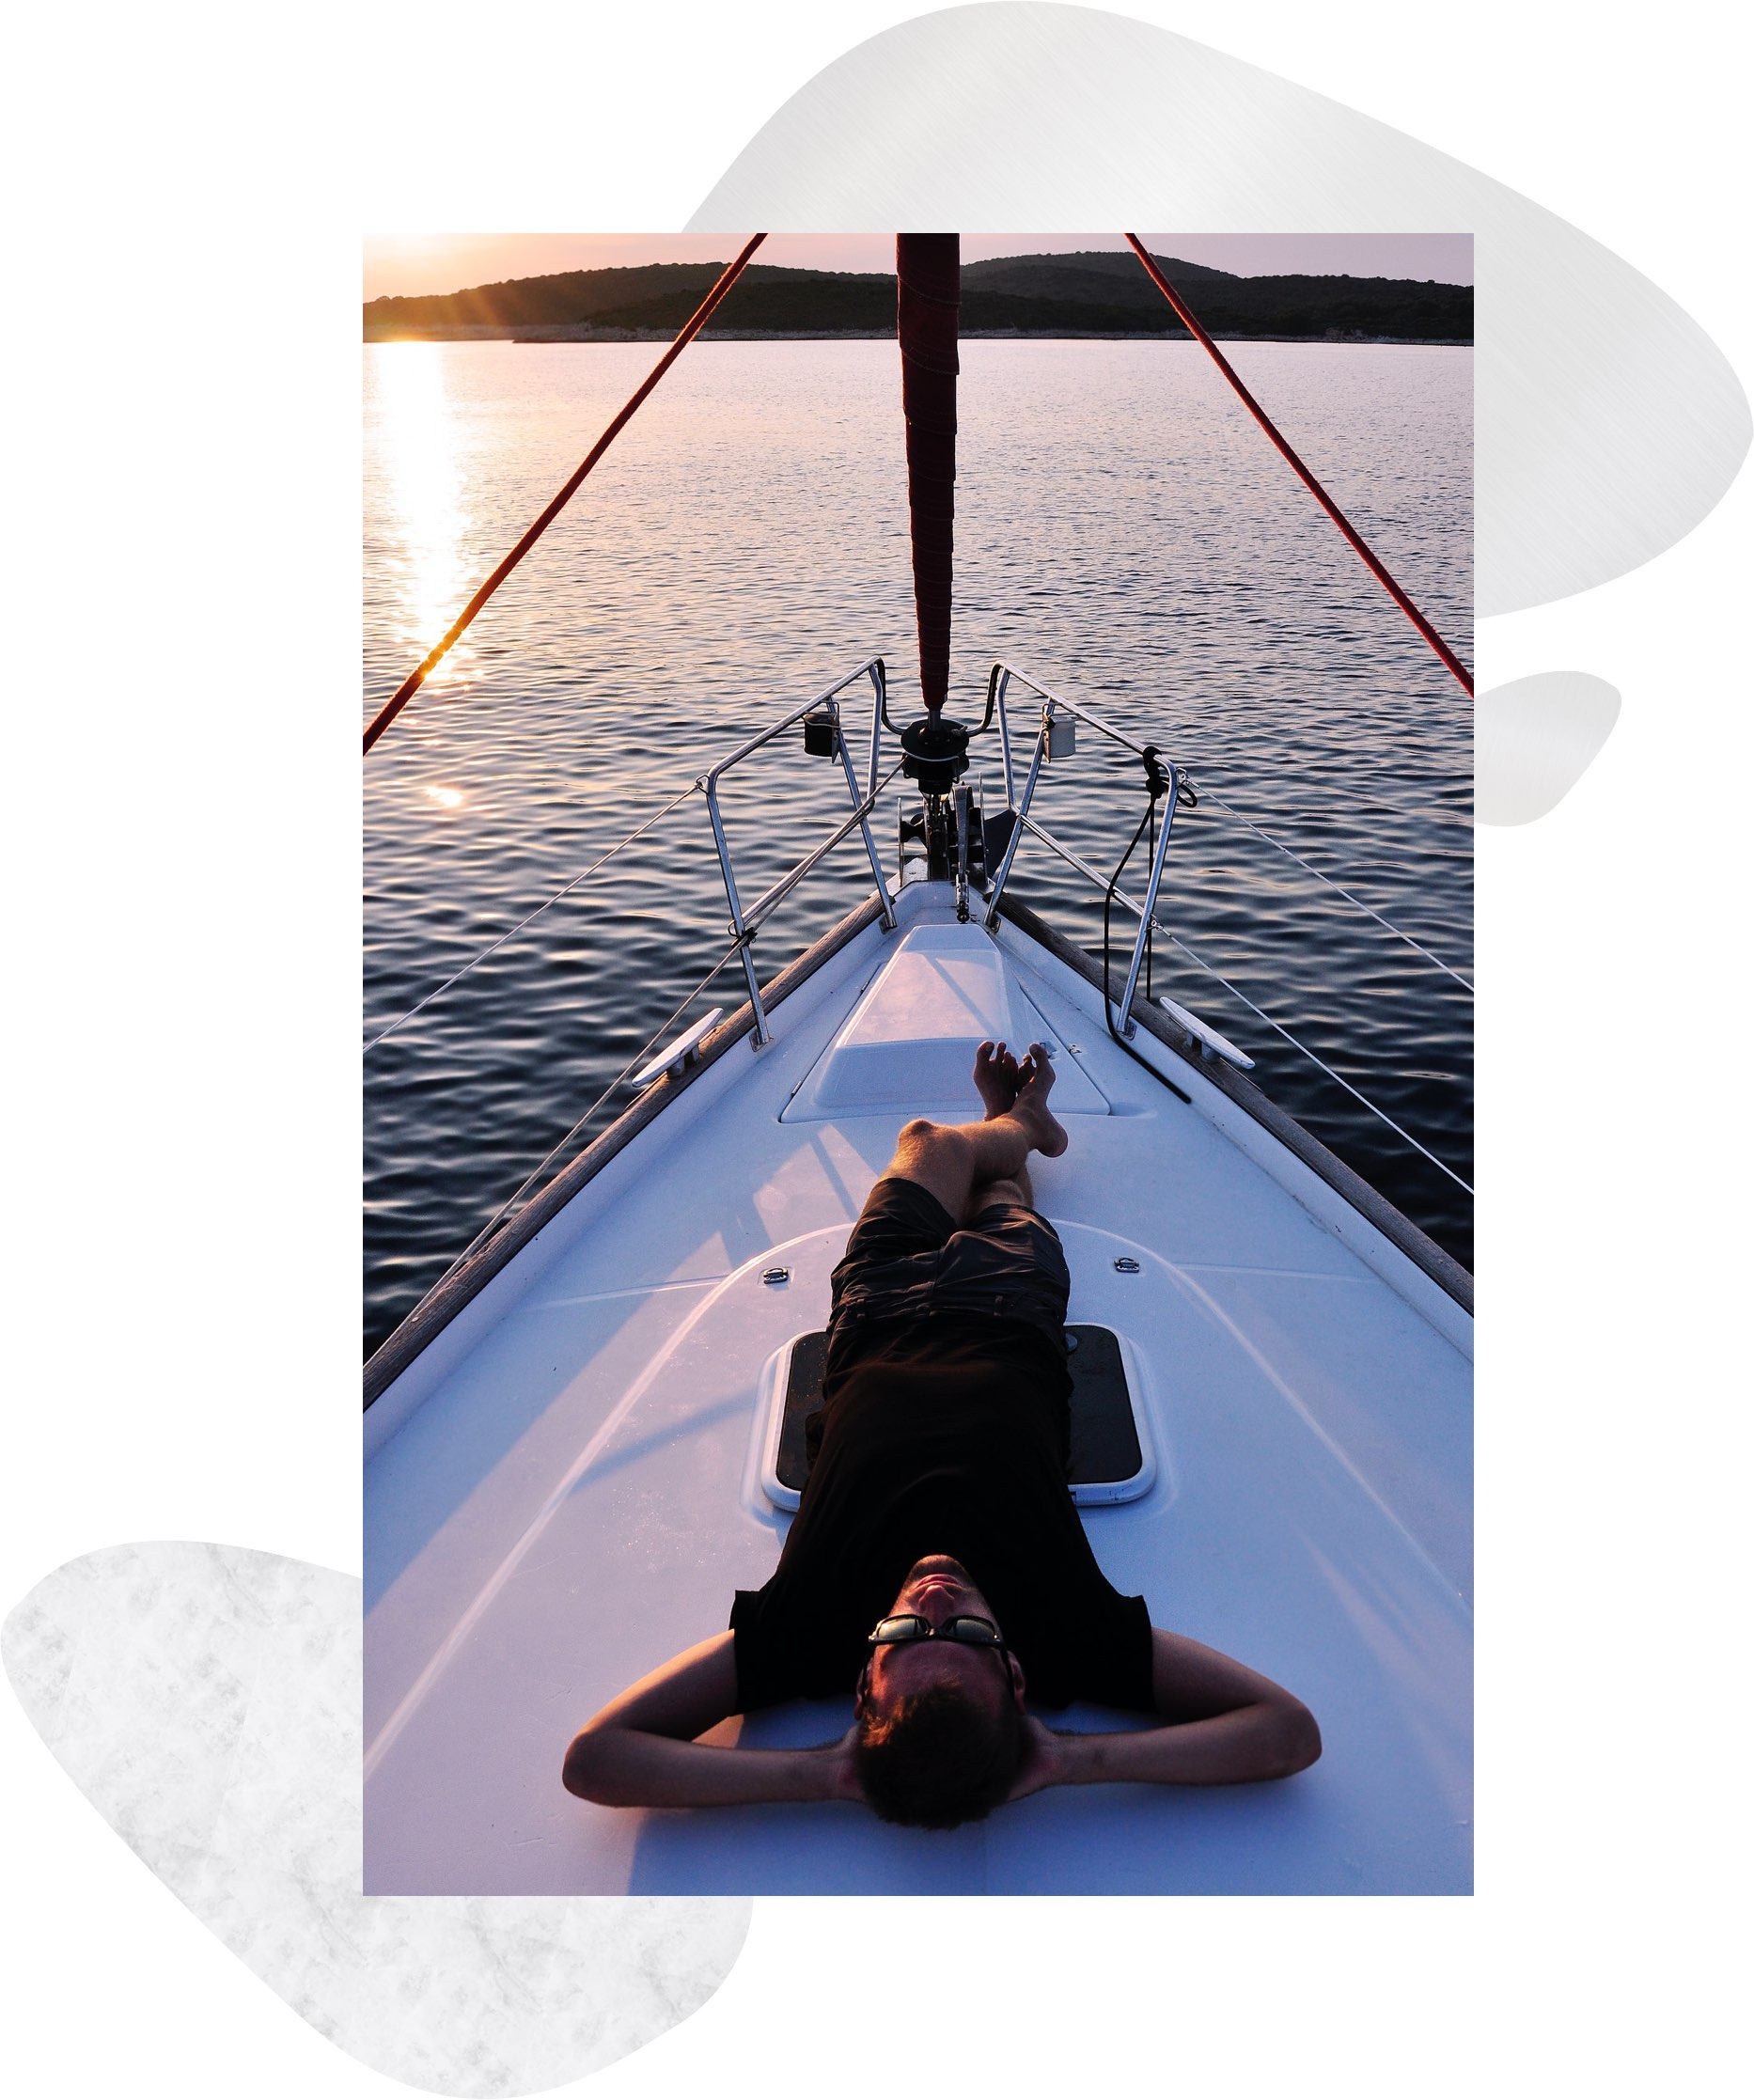 a man laying down on a sailboat